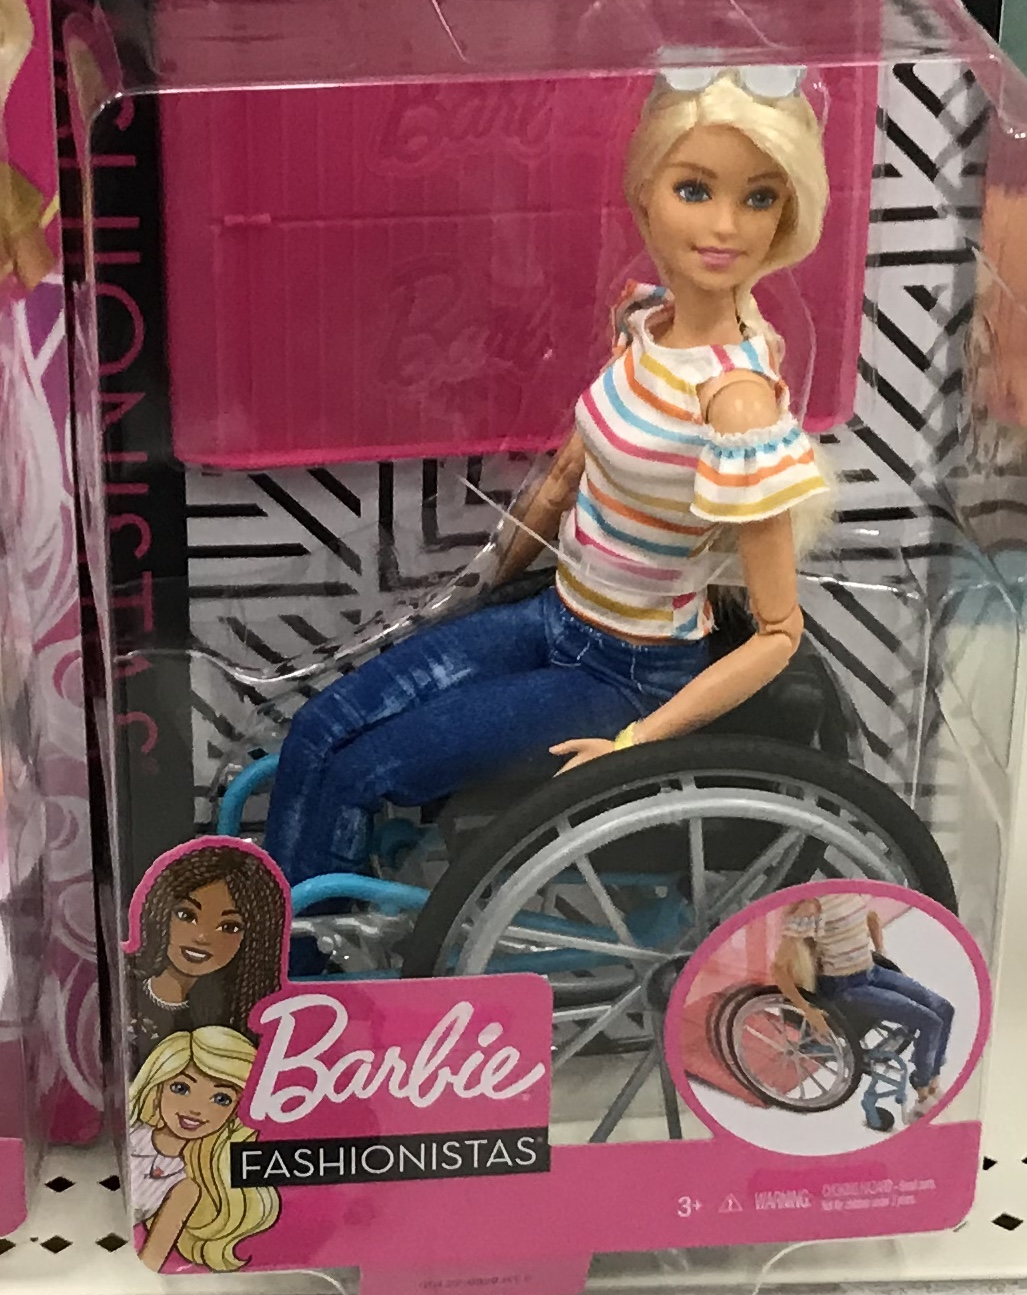 One+of+the+many+new+inclusive+Barbies+from+the+Fashionista+Line.